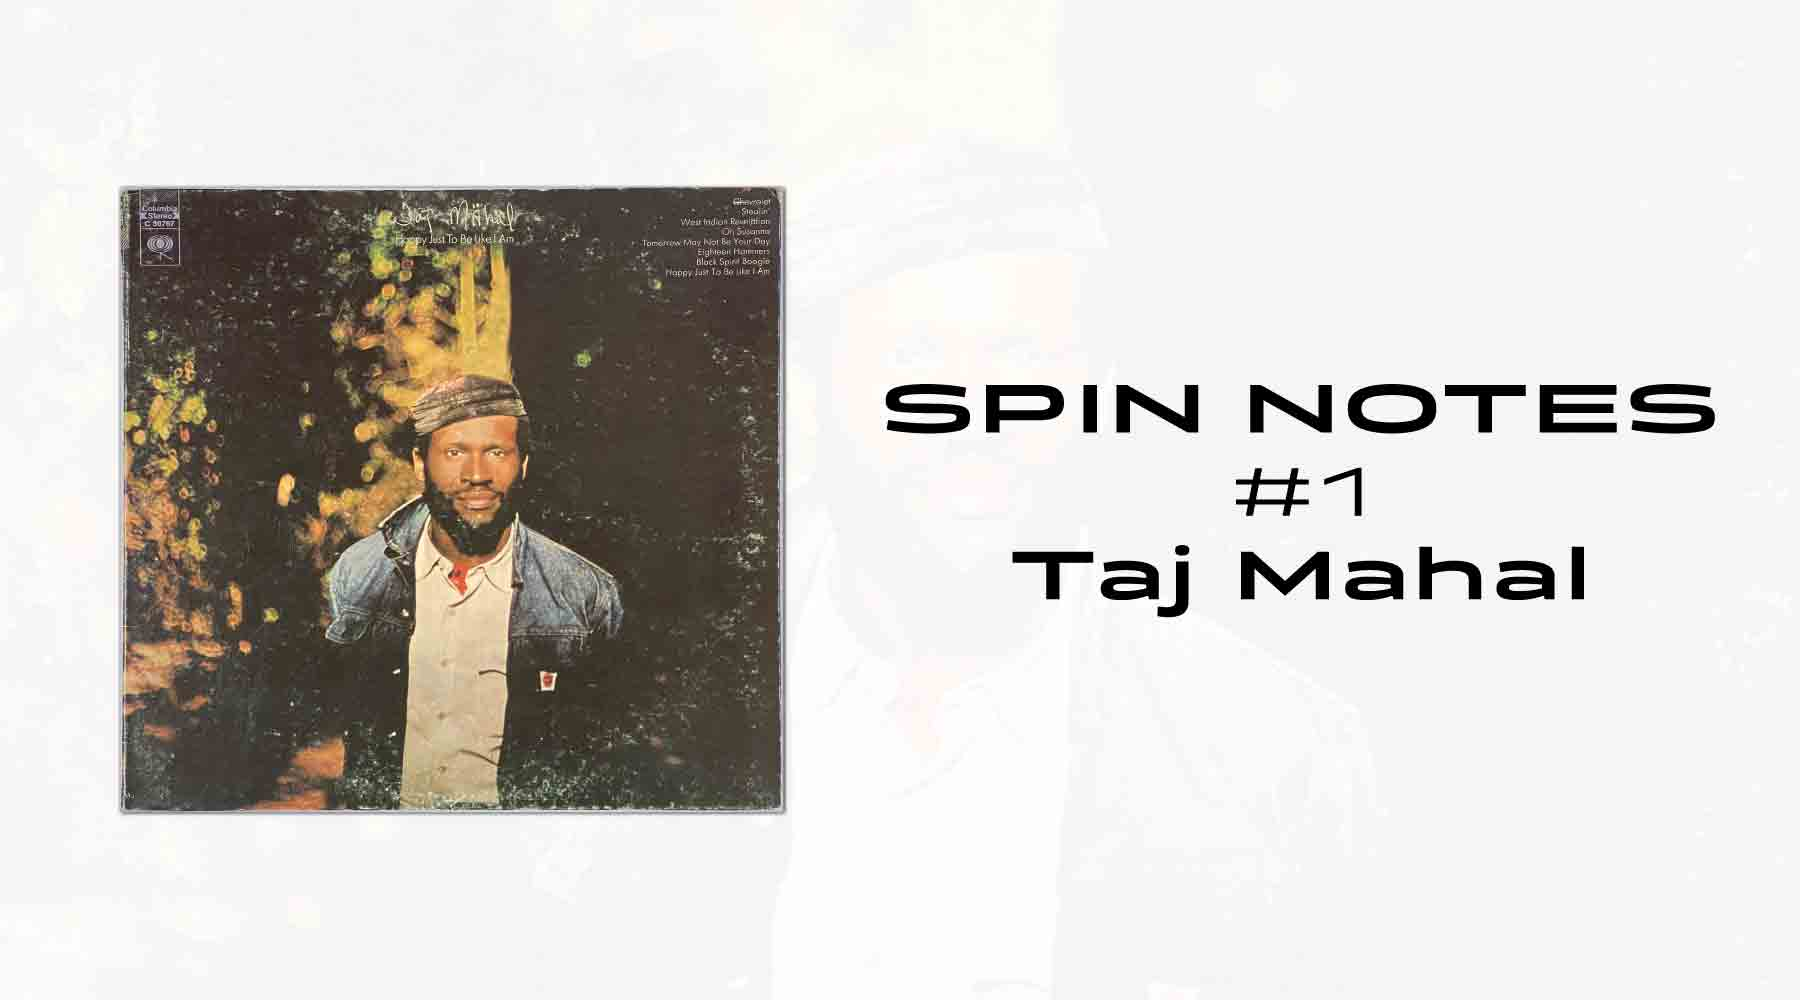 Spin Notes #1 - Taj Mahal